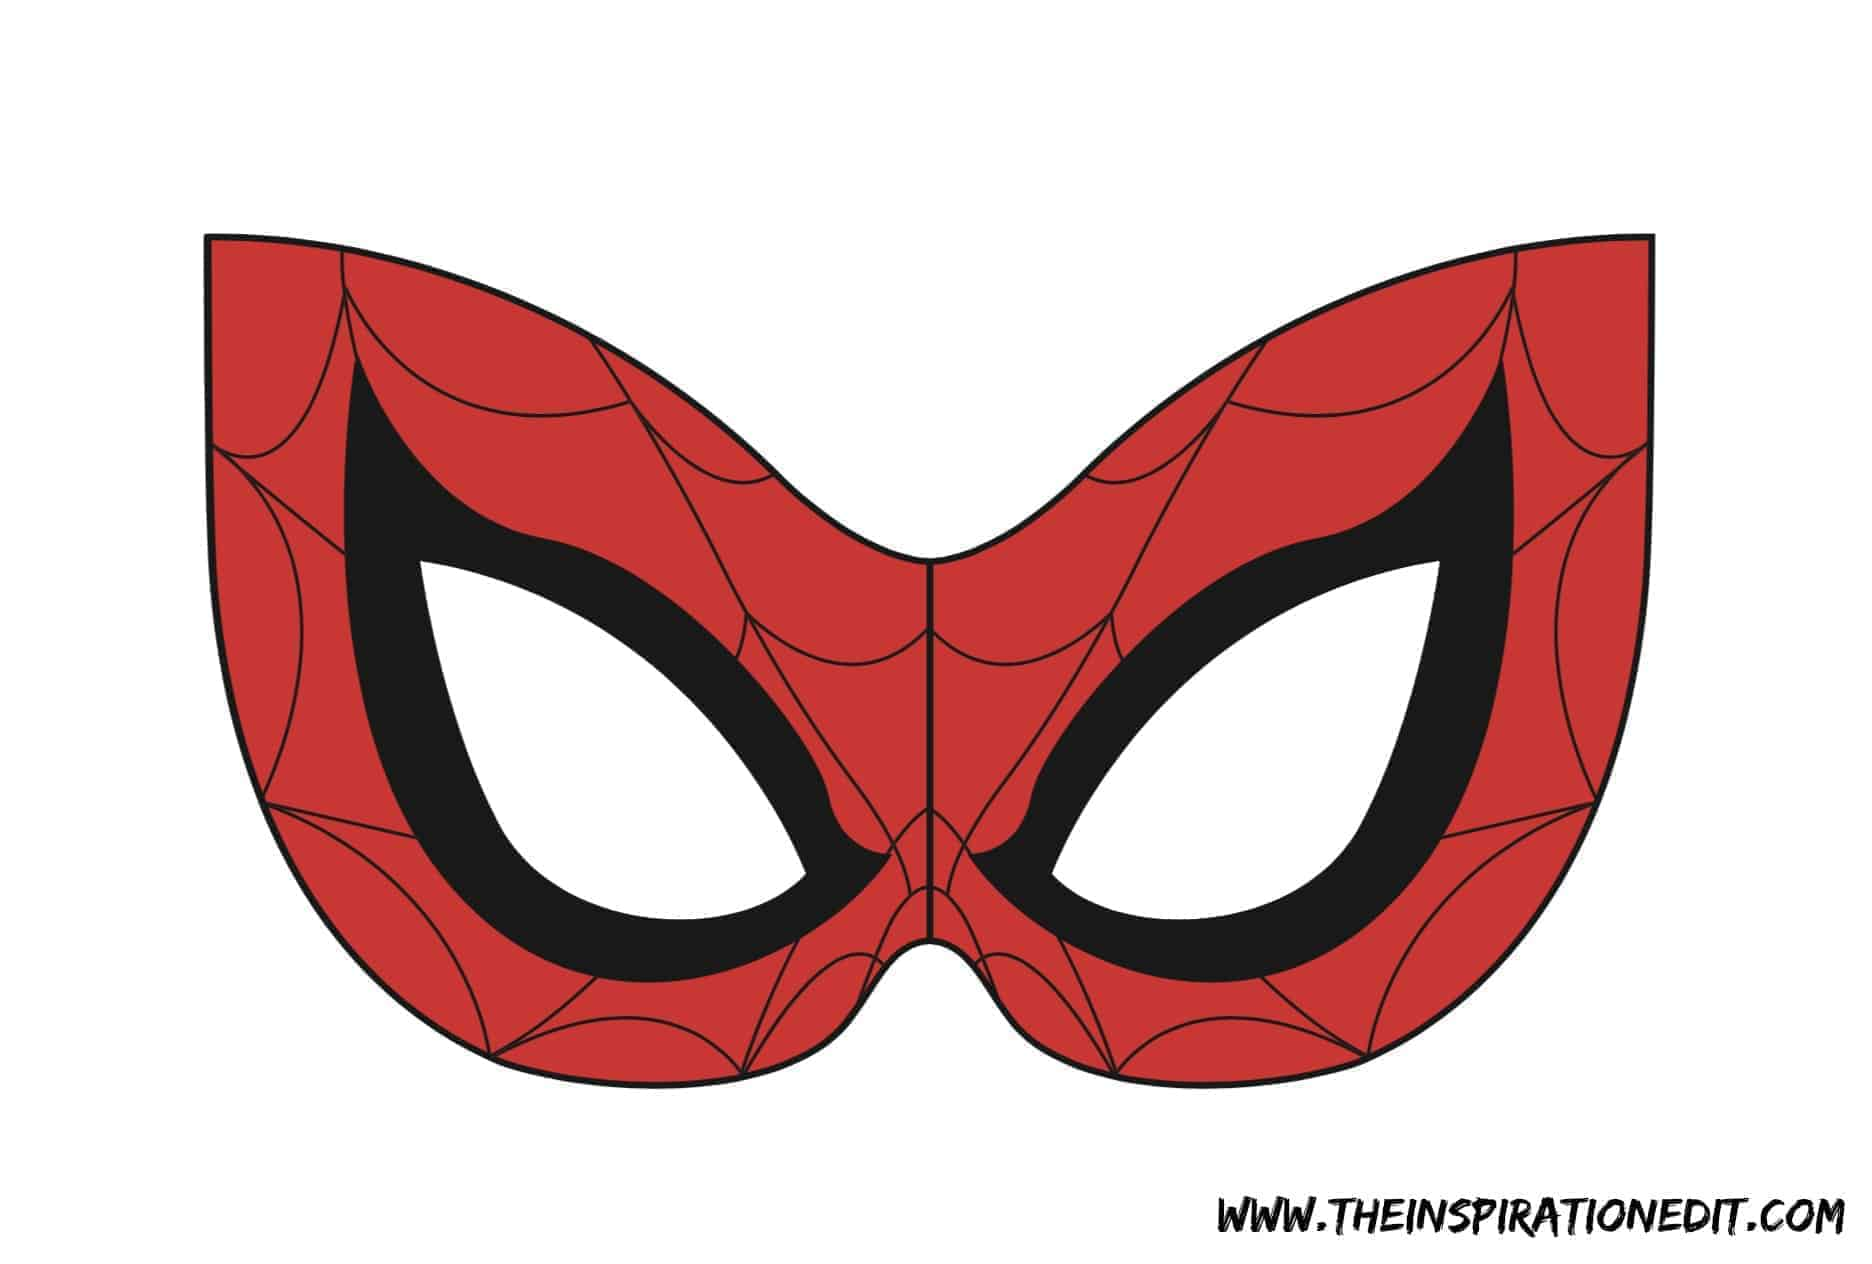 photograph about Spiderman Mask Printable referred to as Spiderman Printable Slice Out Mask - All Pertaining to Of Mask